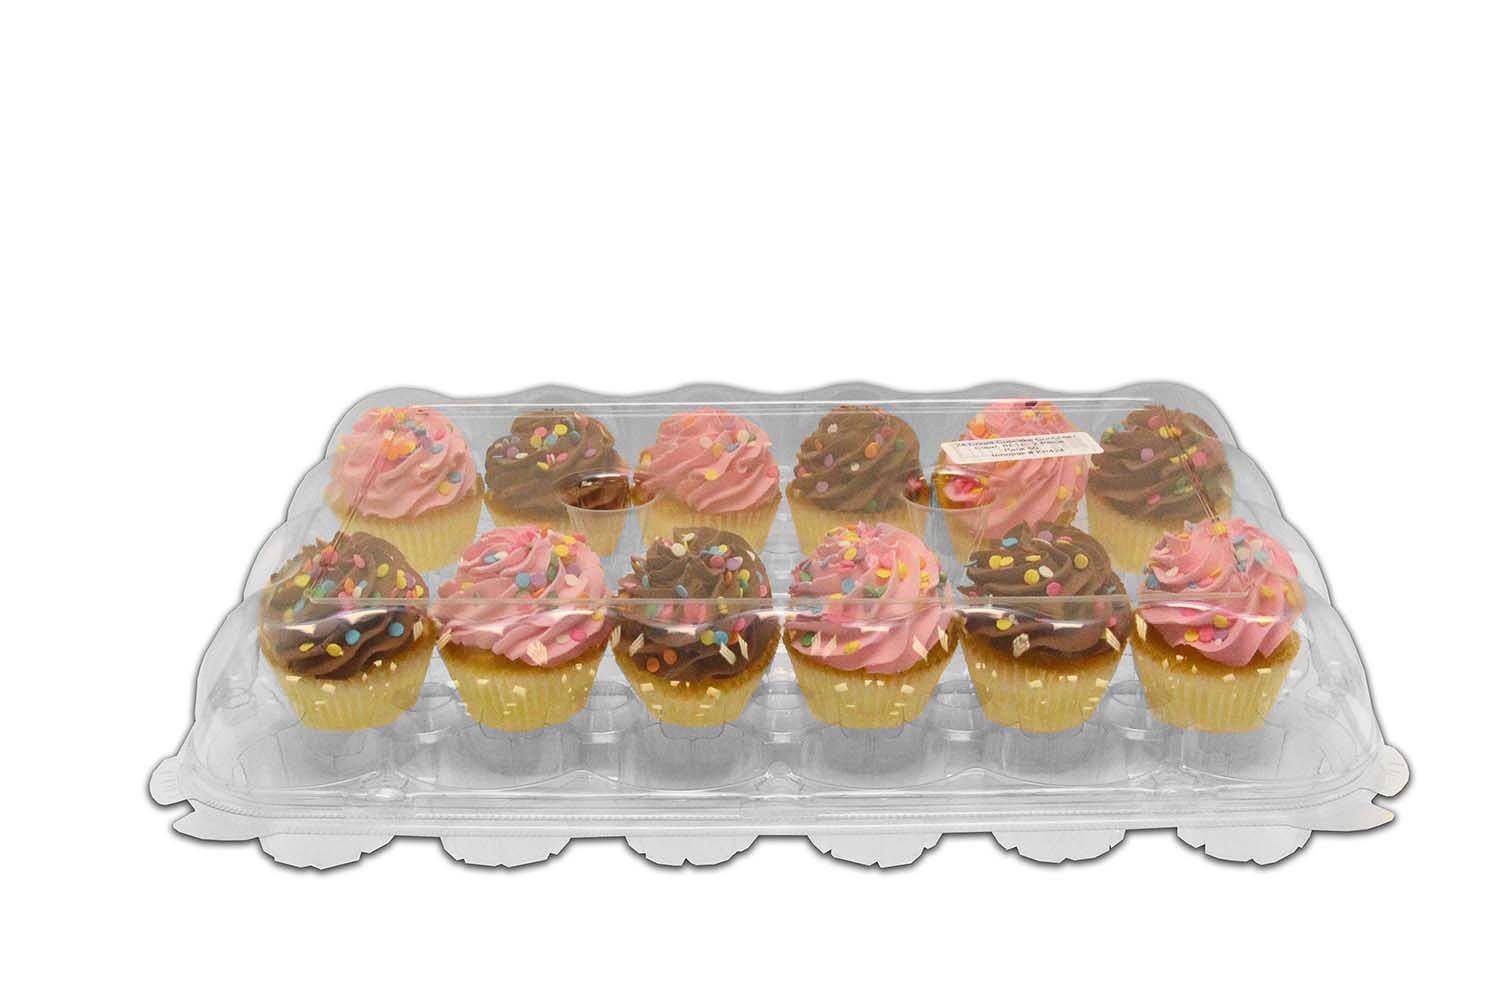 Inno-Pak KP424 24 count Cupcake Container, 13.5'' x 6.75'' x 3.7'' (Pack of 50)